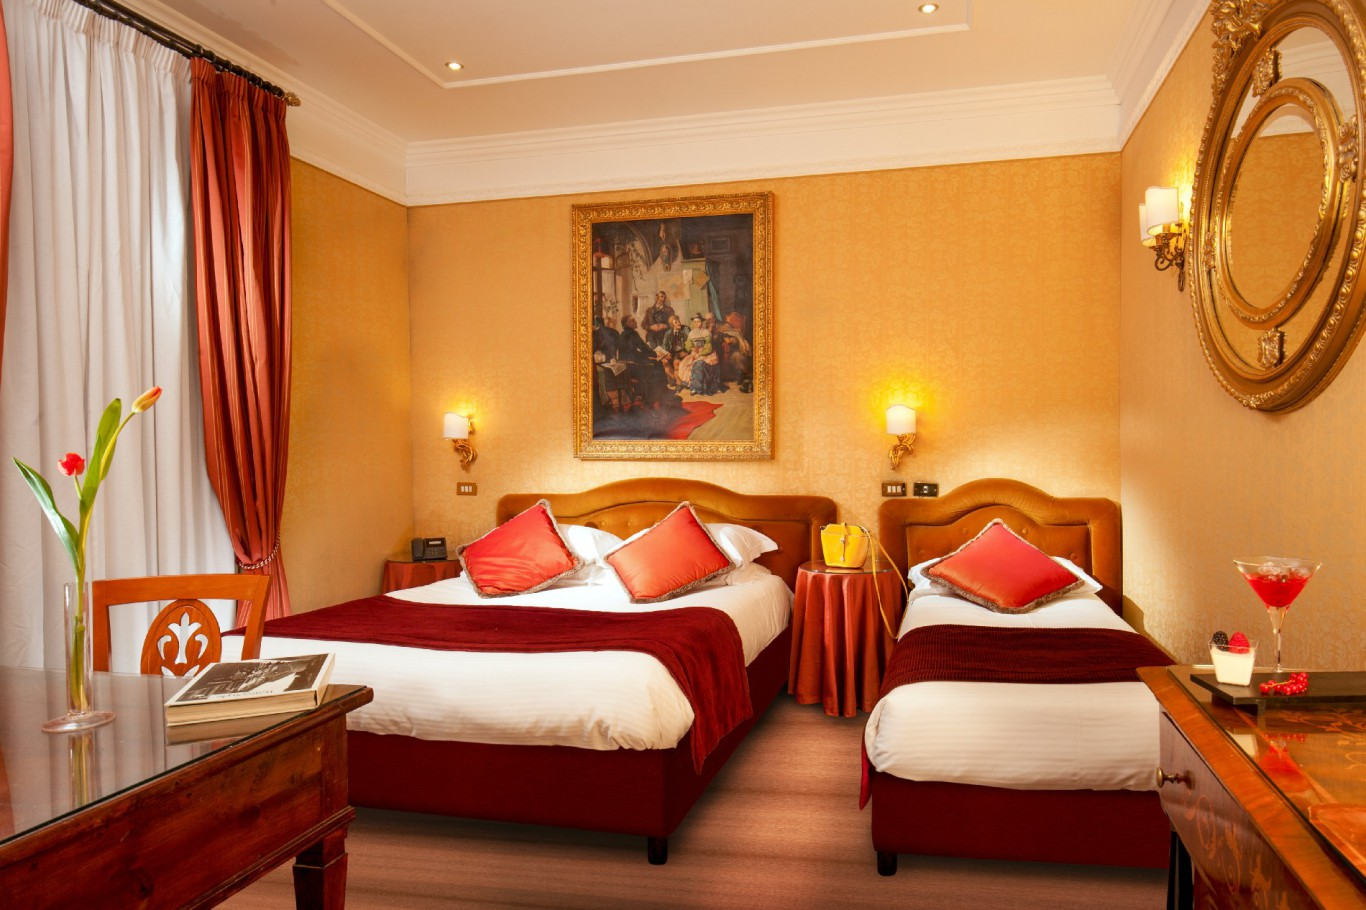 Hotel-Morgana-Rome-deluxe-room1